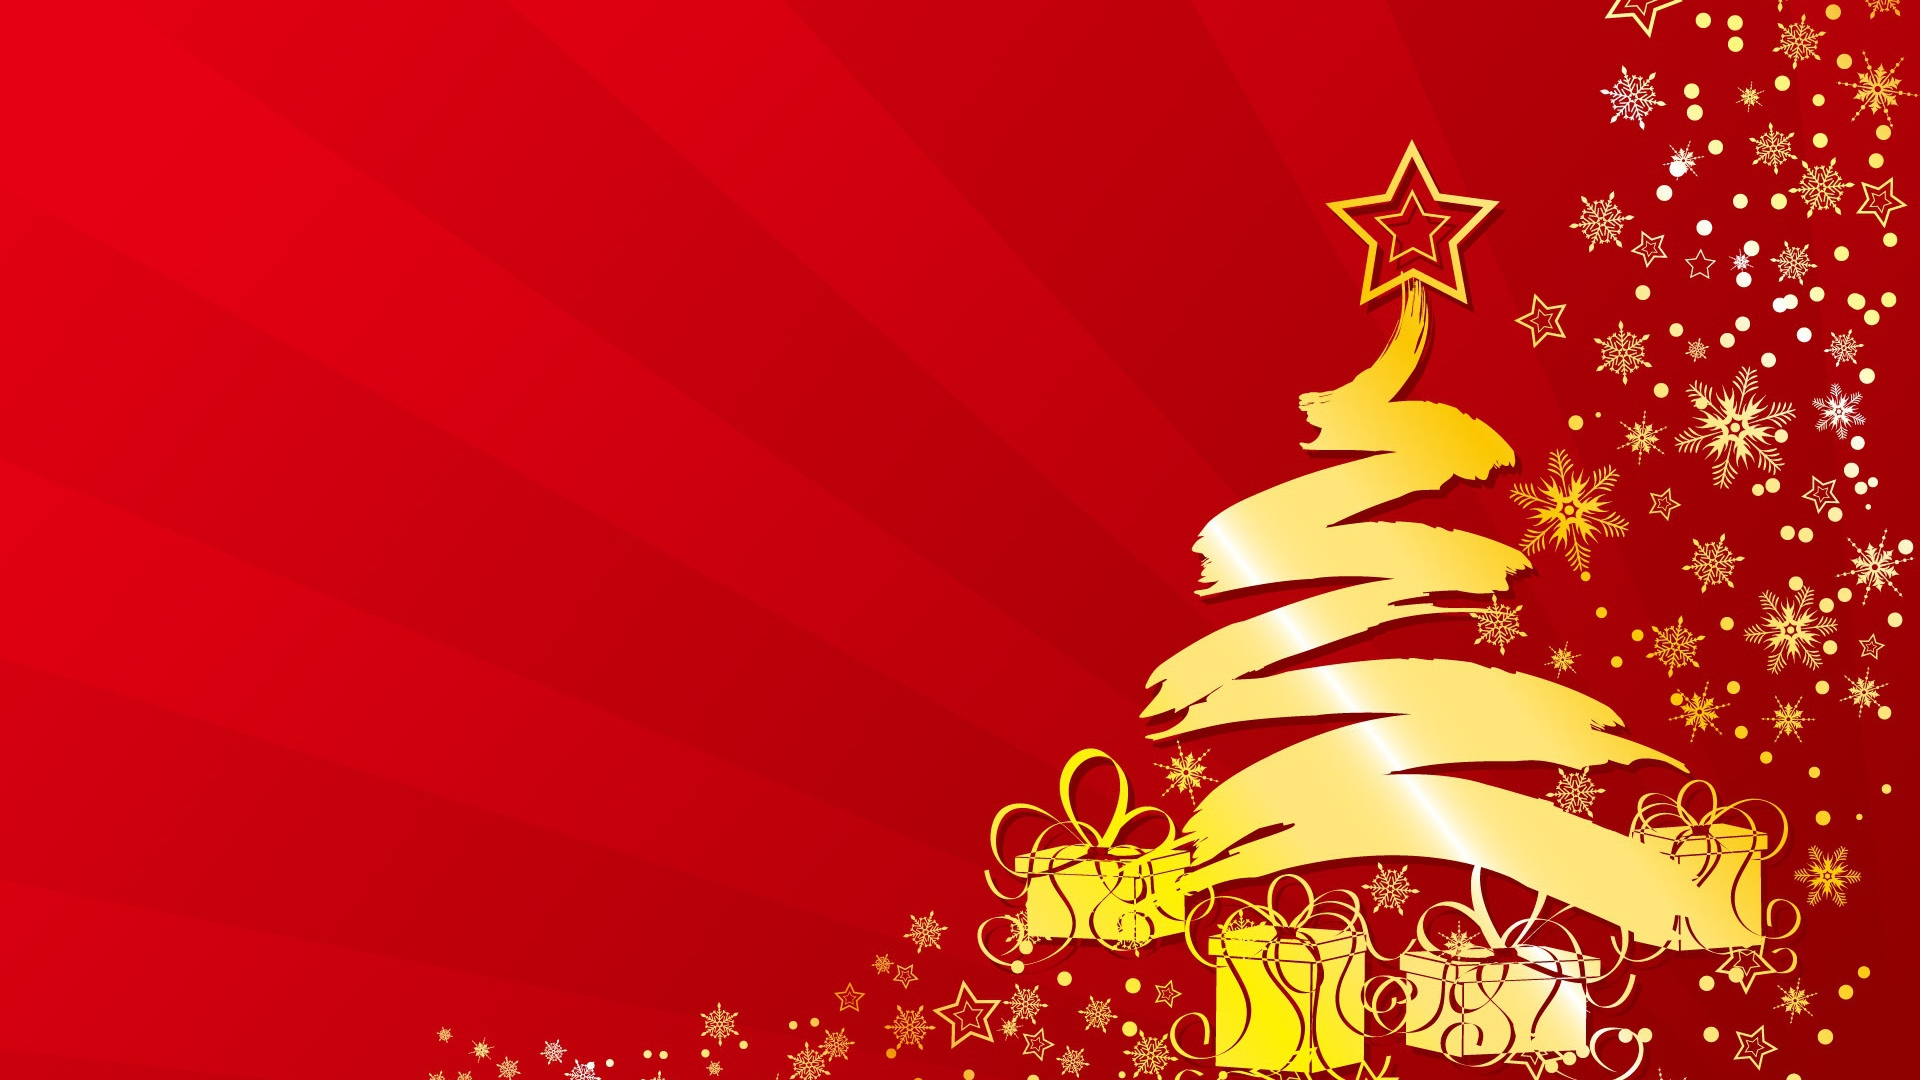 red christmas tree background - photo #19